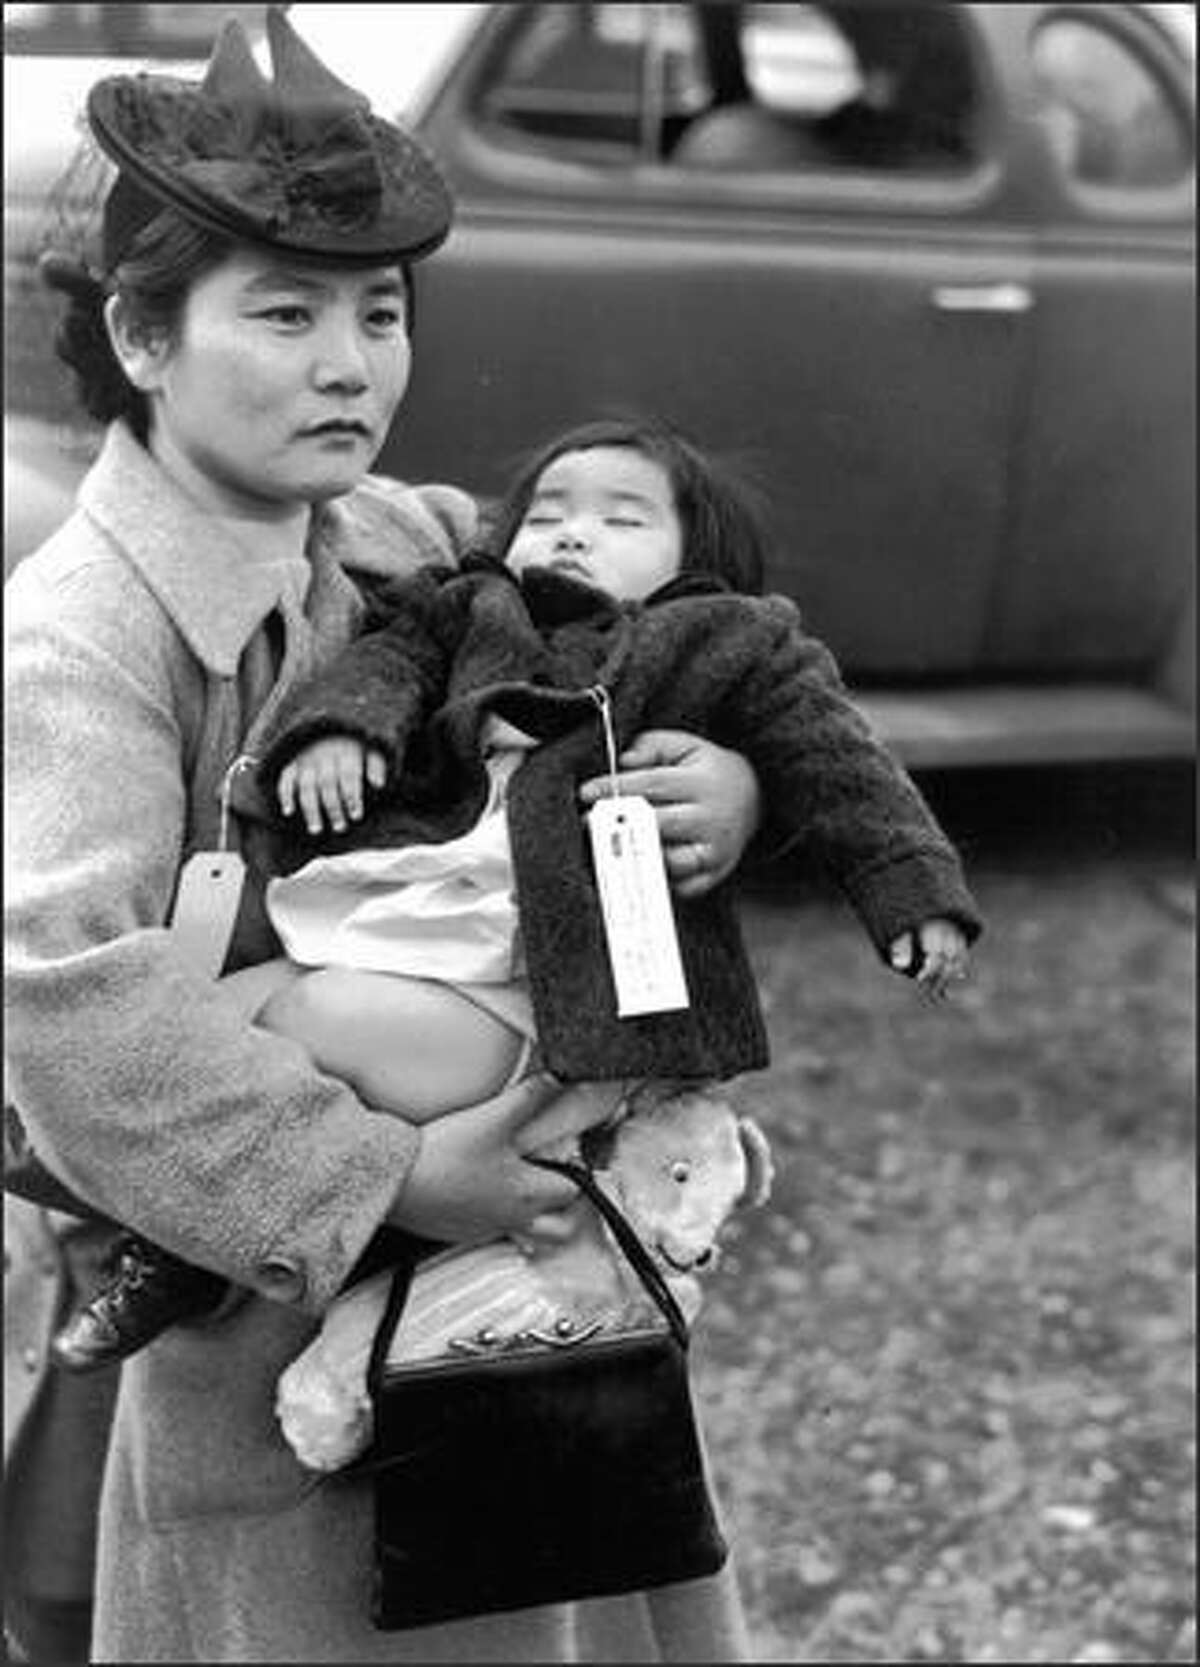 Her daughter asleep in her arms, Fumiko Hayashida waits to board a ferry from Bainbridge Island on March 30, 1942. The pair were being deported to an internment camp for Japanese-Americans in Manzanar, Calif.